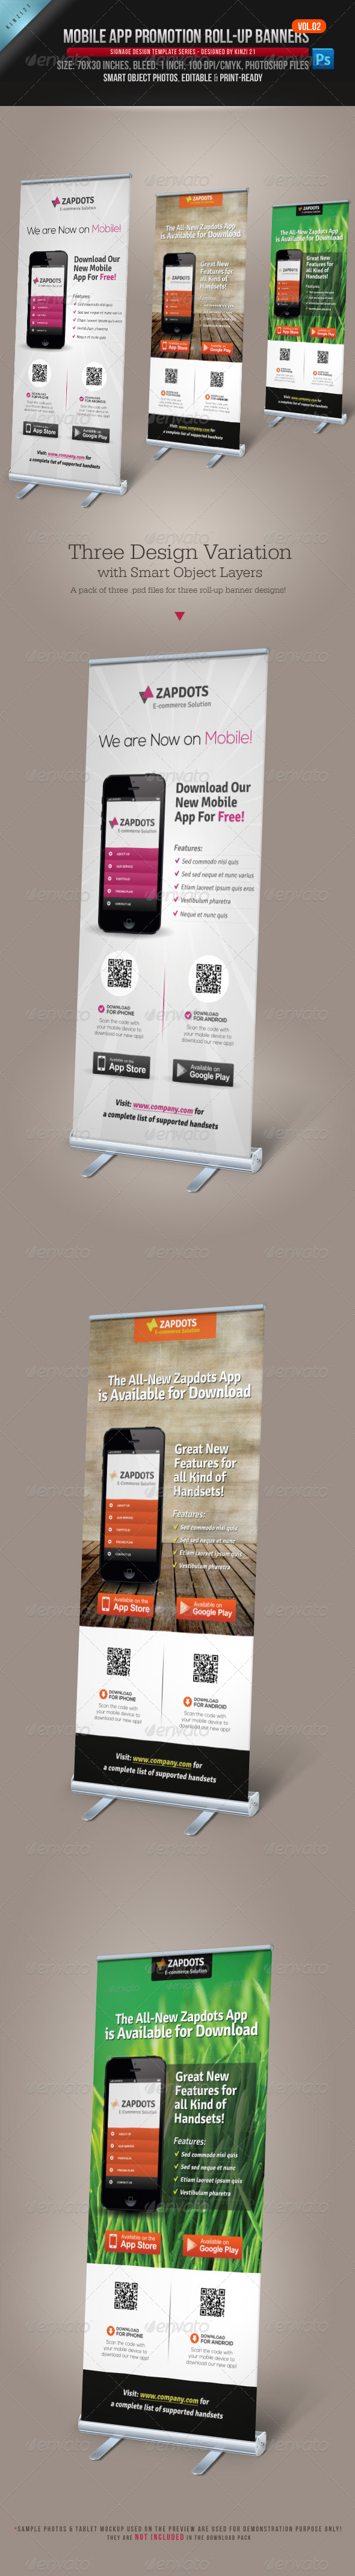 GraphicRiver Mobile App Promotion Roll-up Banners Vol.02 4689886